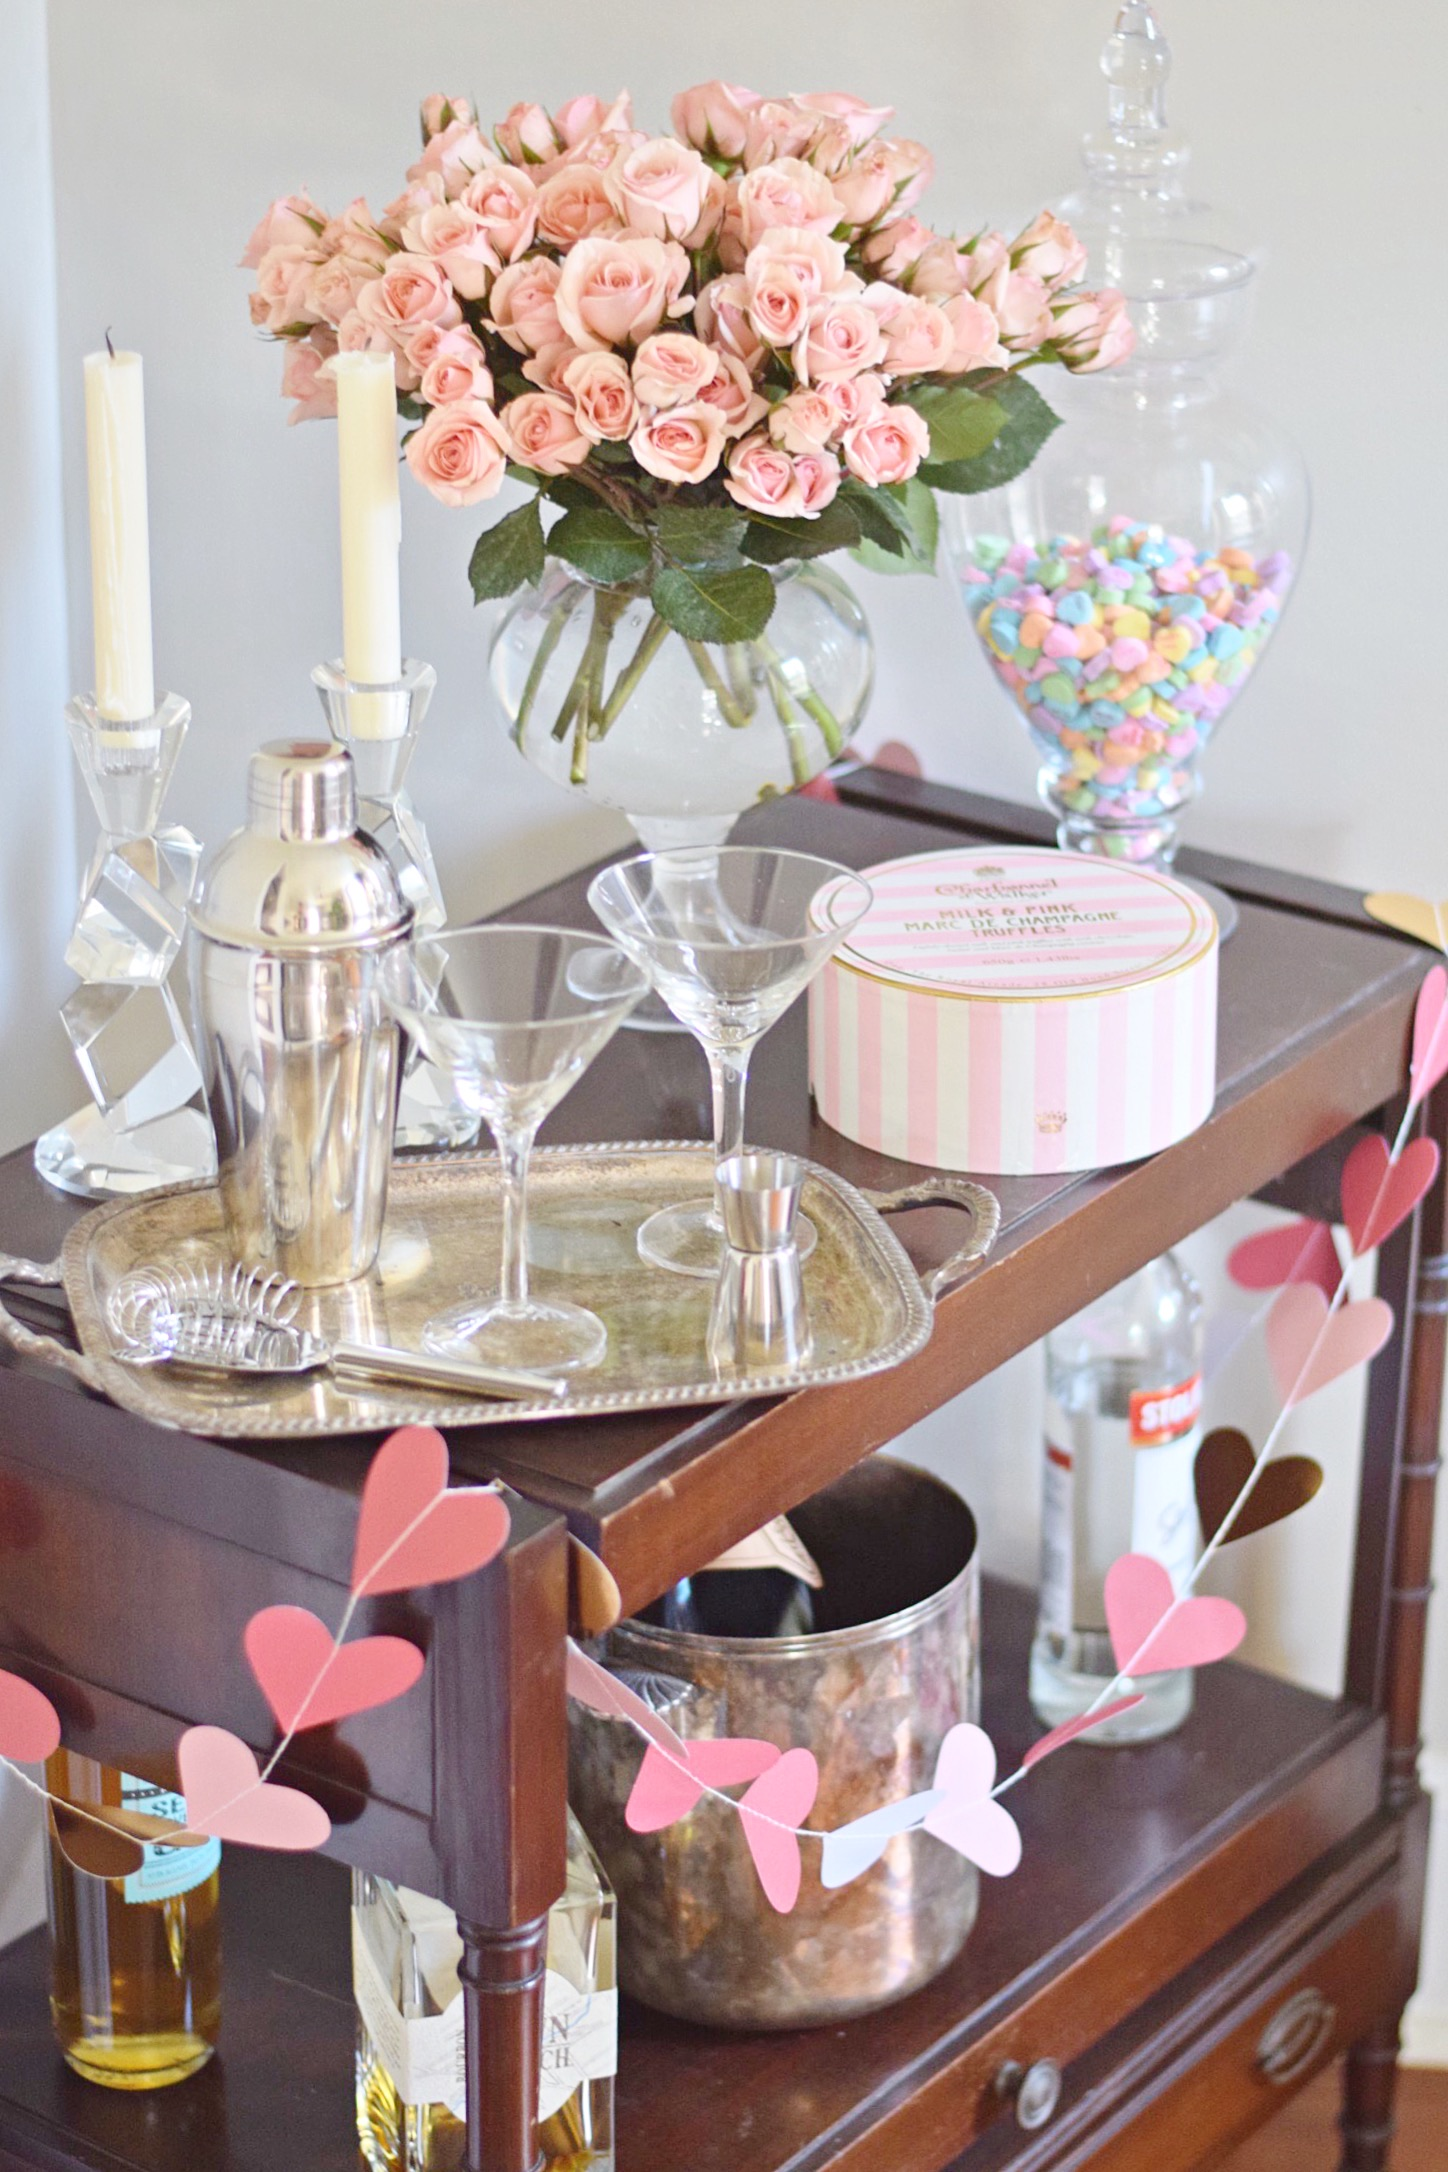 martini glasses pink roses and champagne truffles